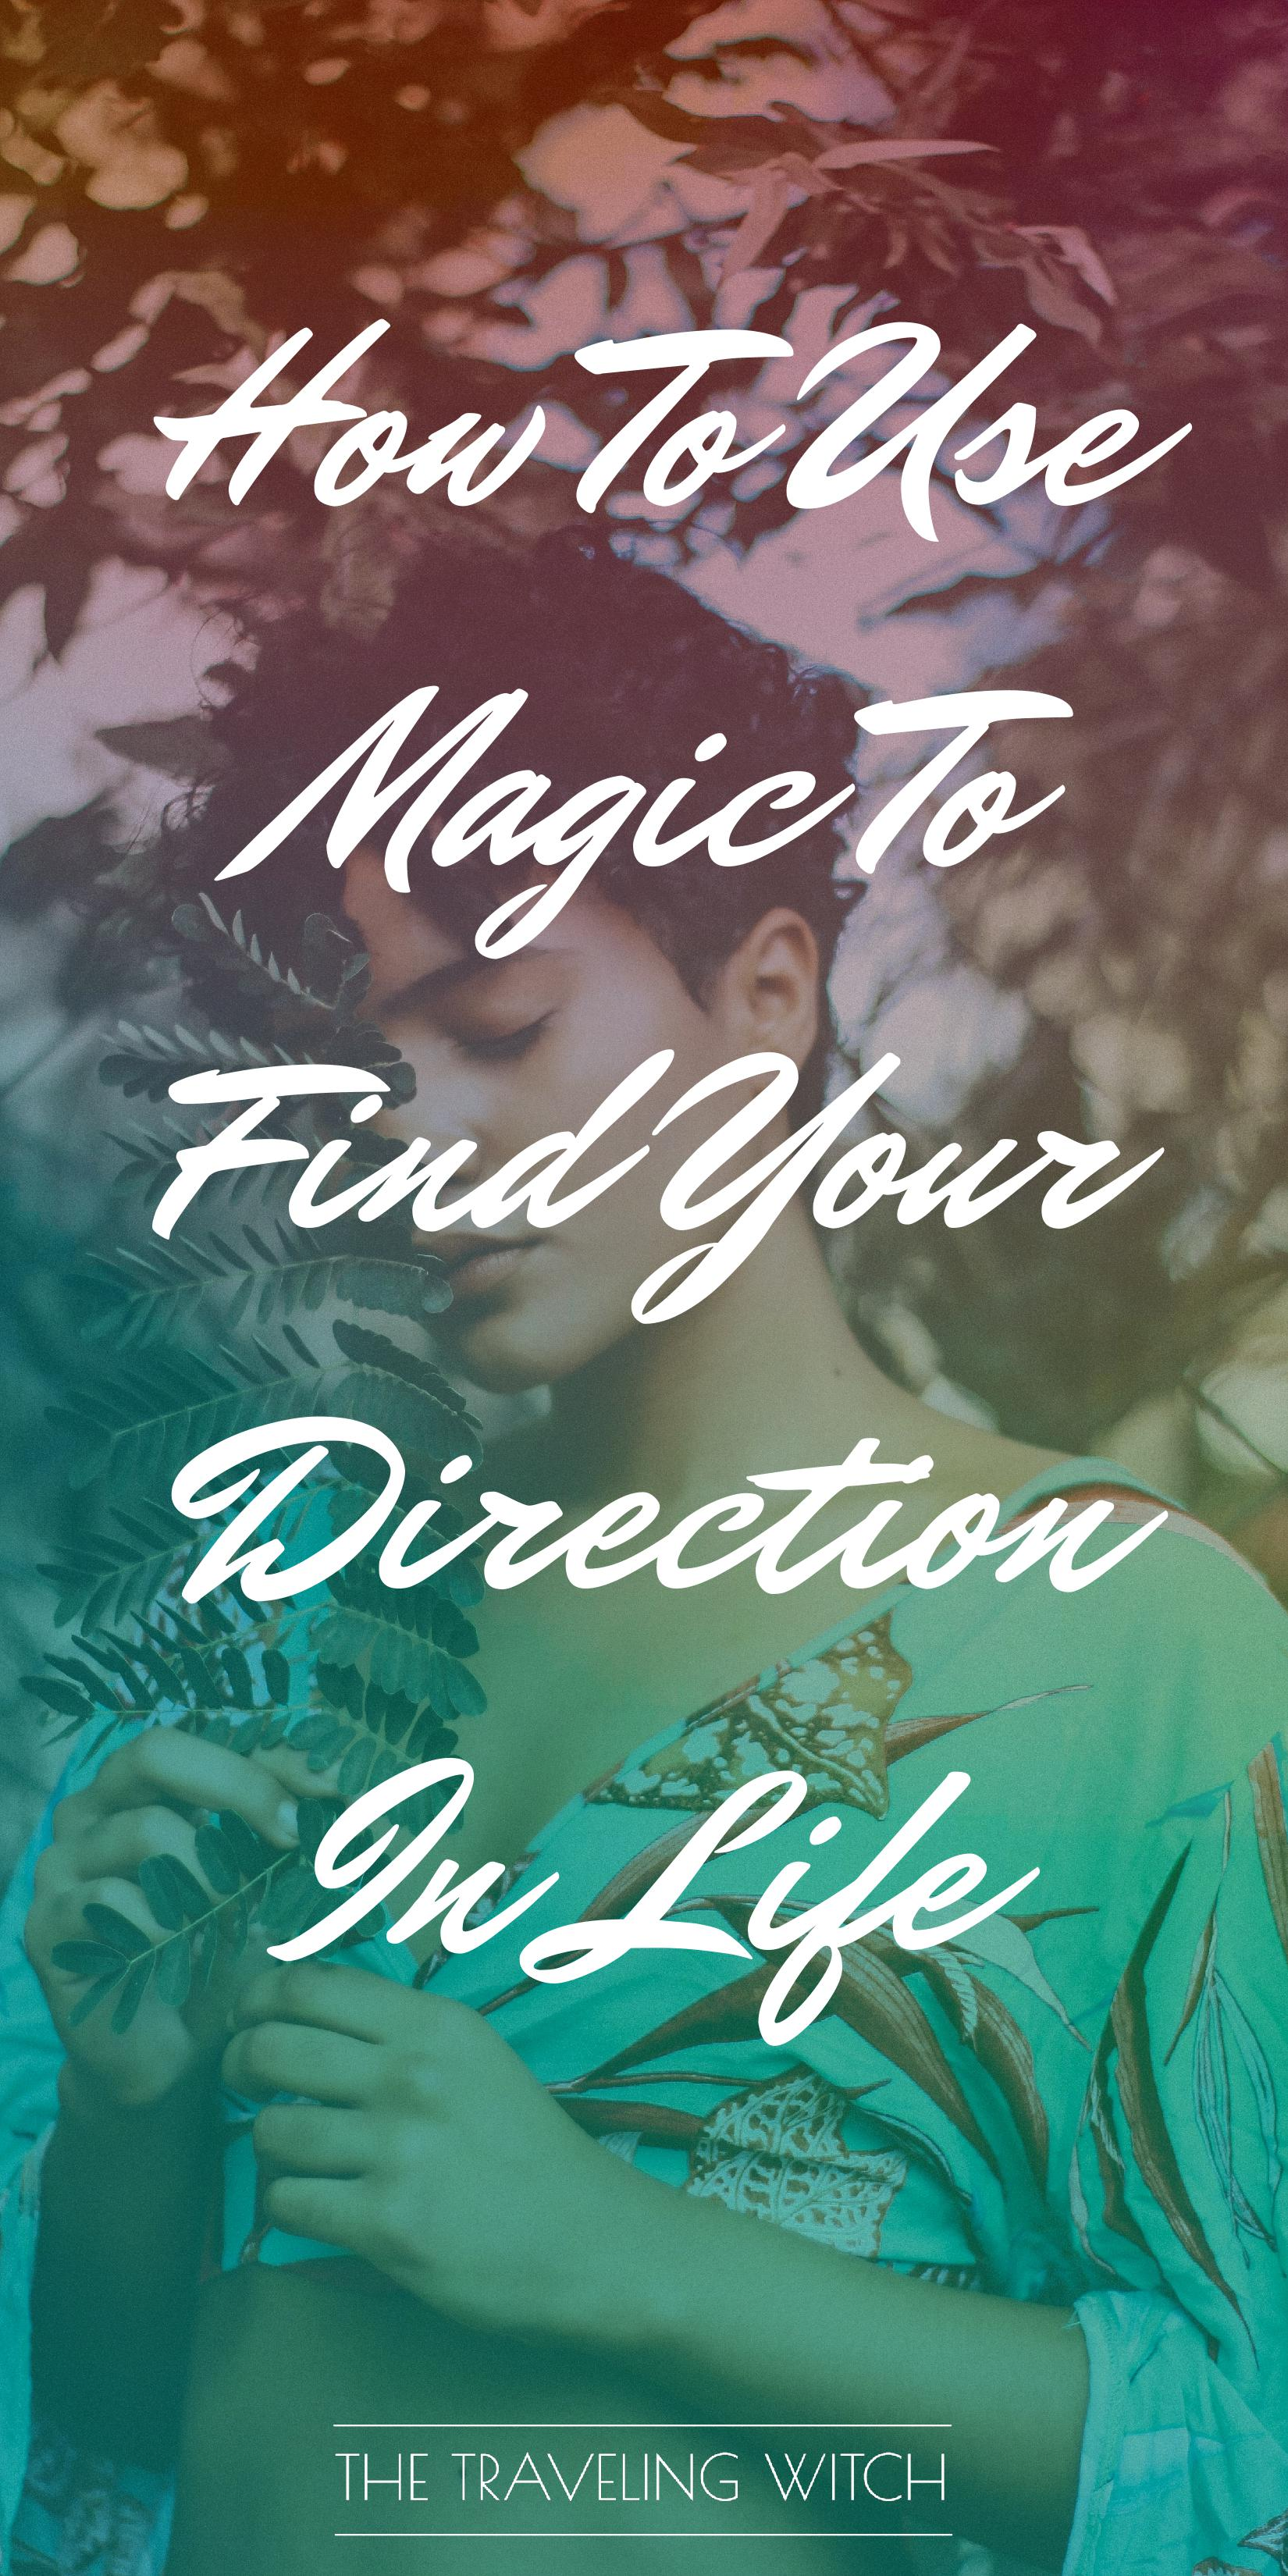 How To Use Magic To Find Your Direction In Life by The Traveling Witch #Witchcraft #Magic